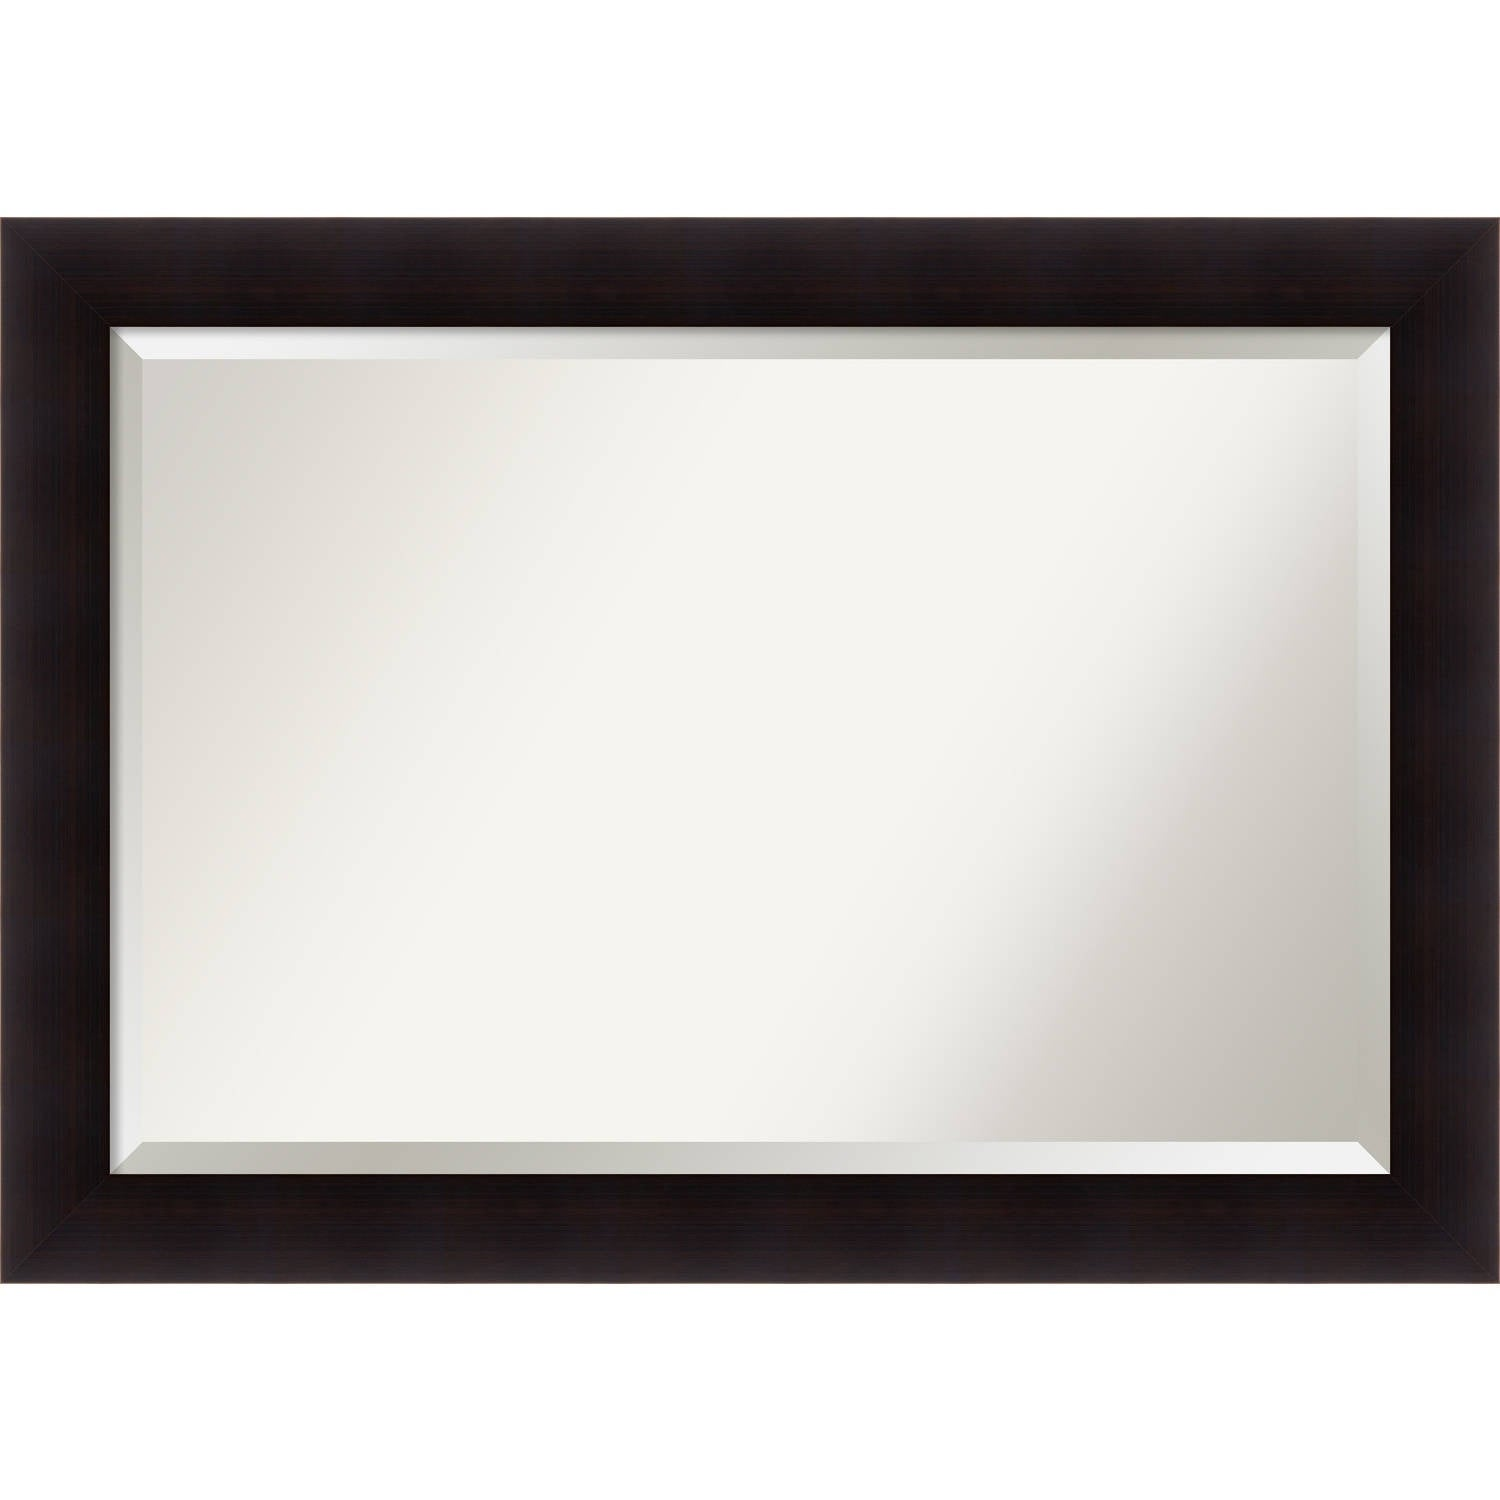 Shop Bathroom Mirror Extra Large, Portico Espresso 42 X 30 Inch   Free  Shipping Today   Overstock.com   15342323